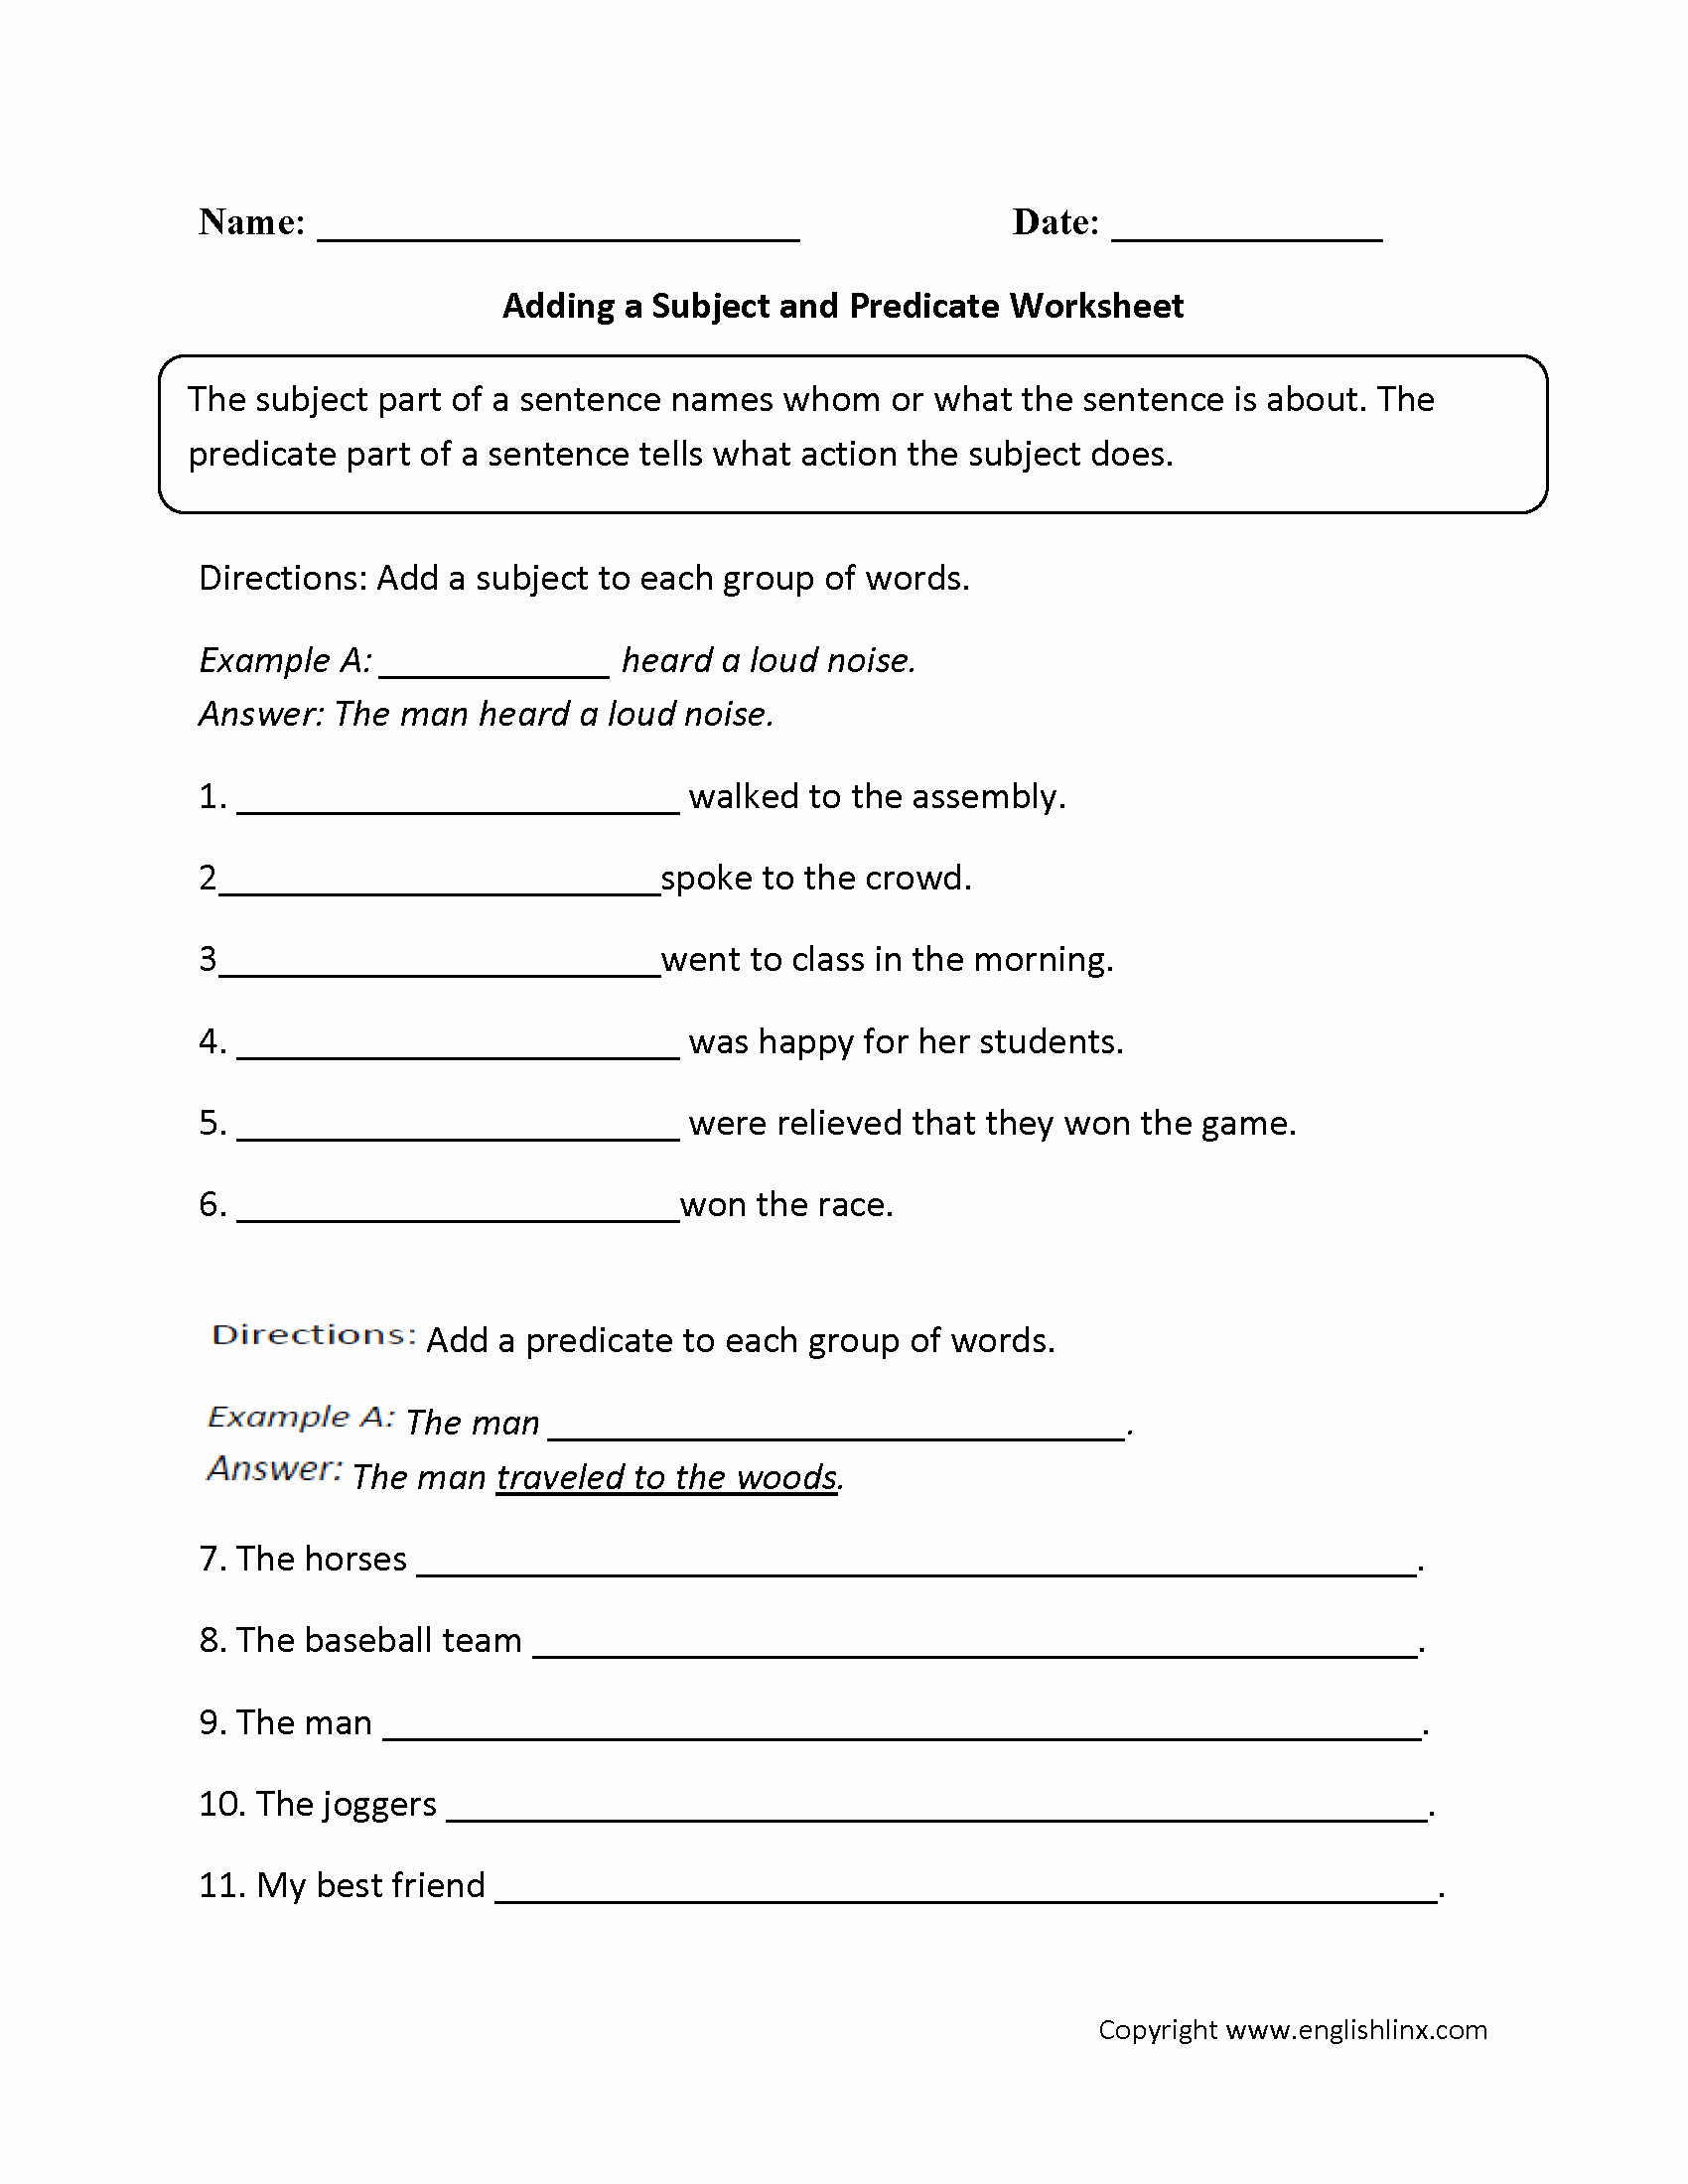 Subject and Predicate Worksheet Beautiful Englishlinx